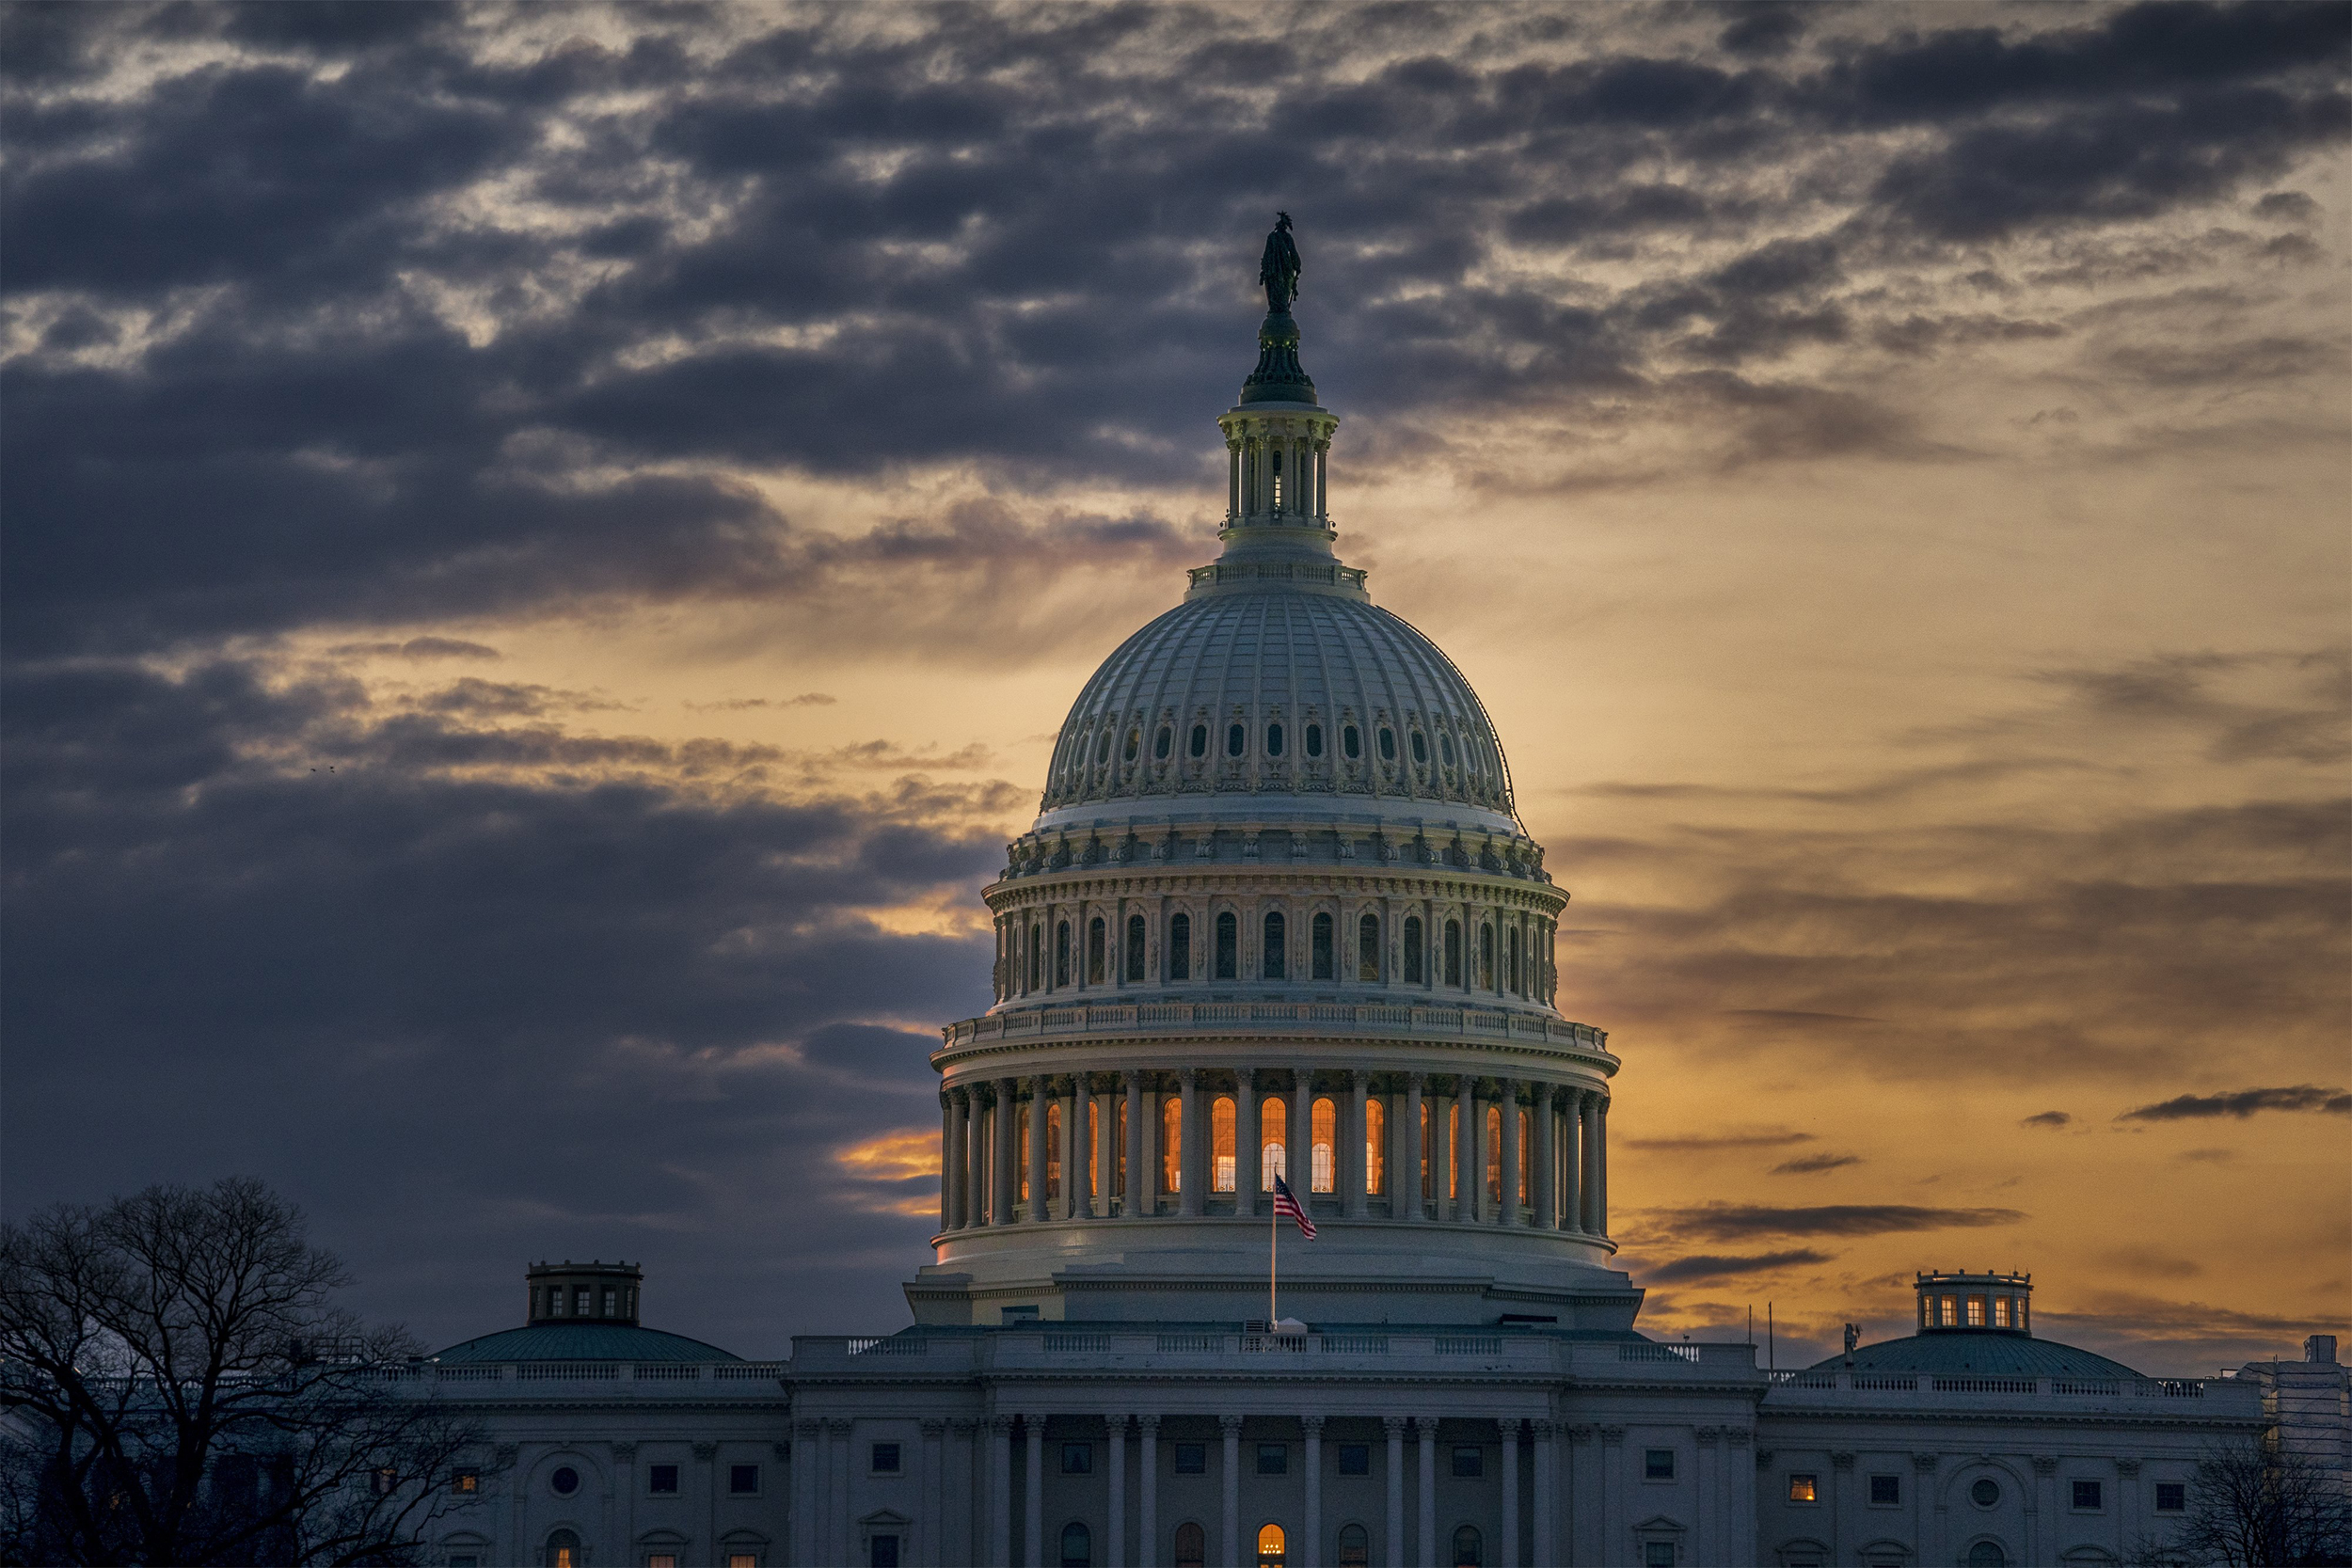 nbcnews.com - FBI ready to brief Congress leaders on Mueller counterintel findings